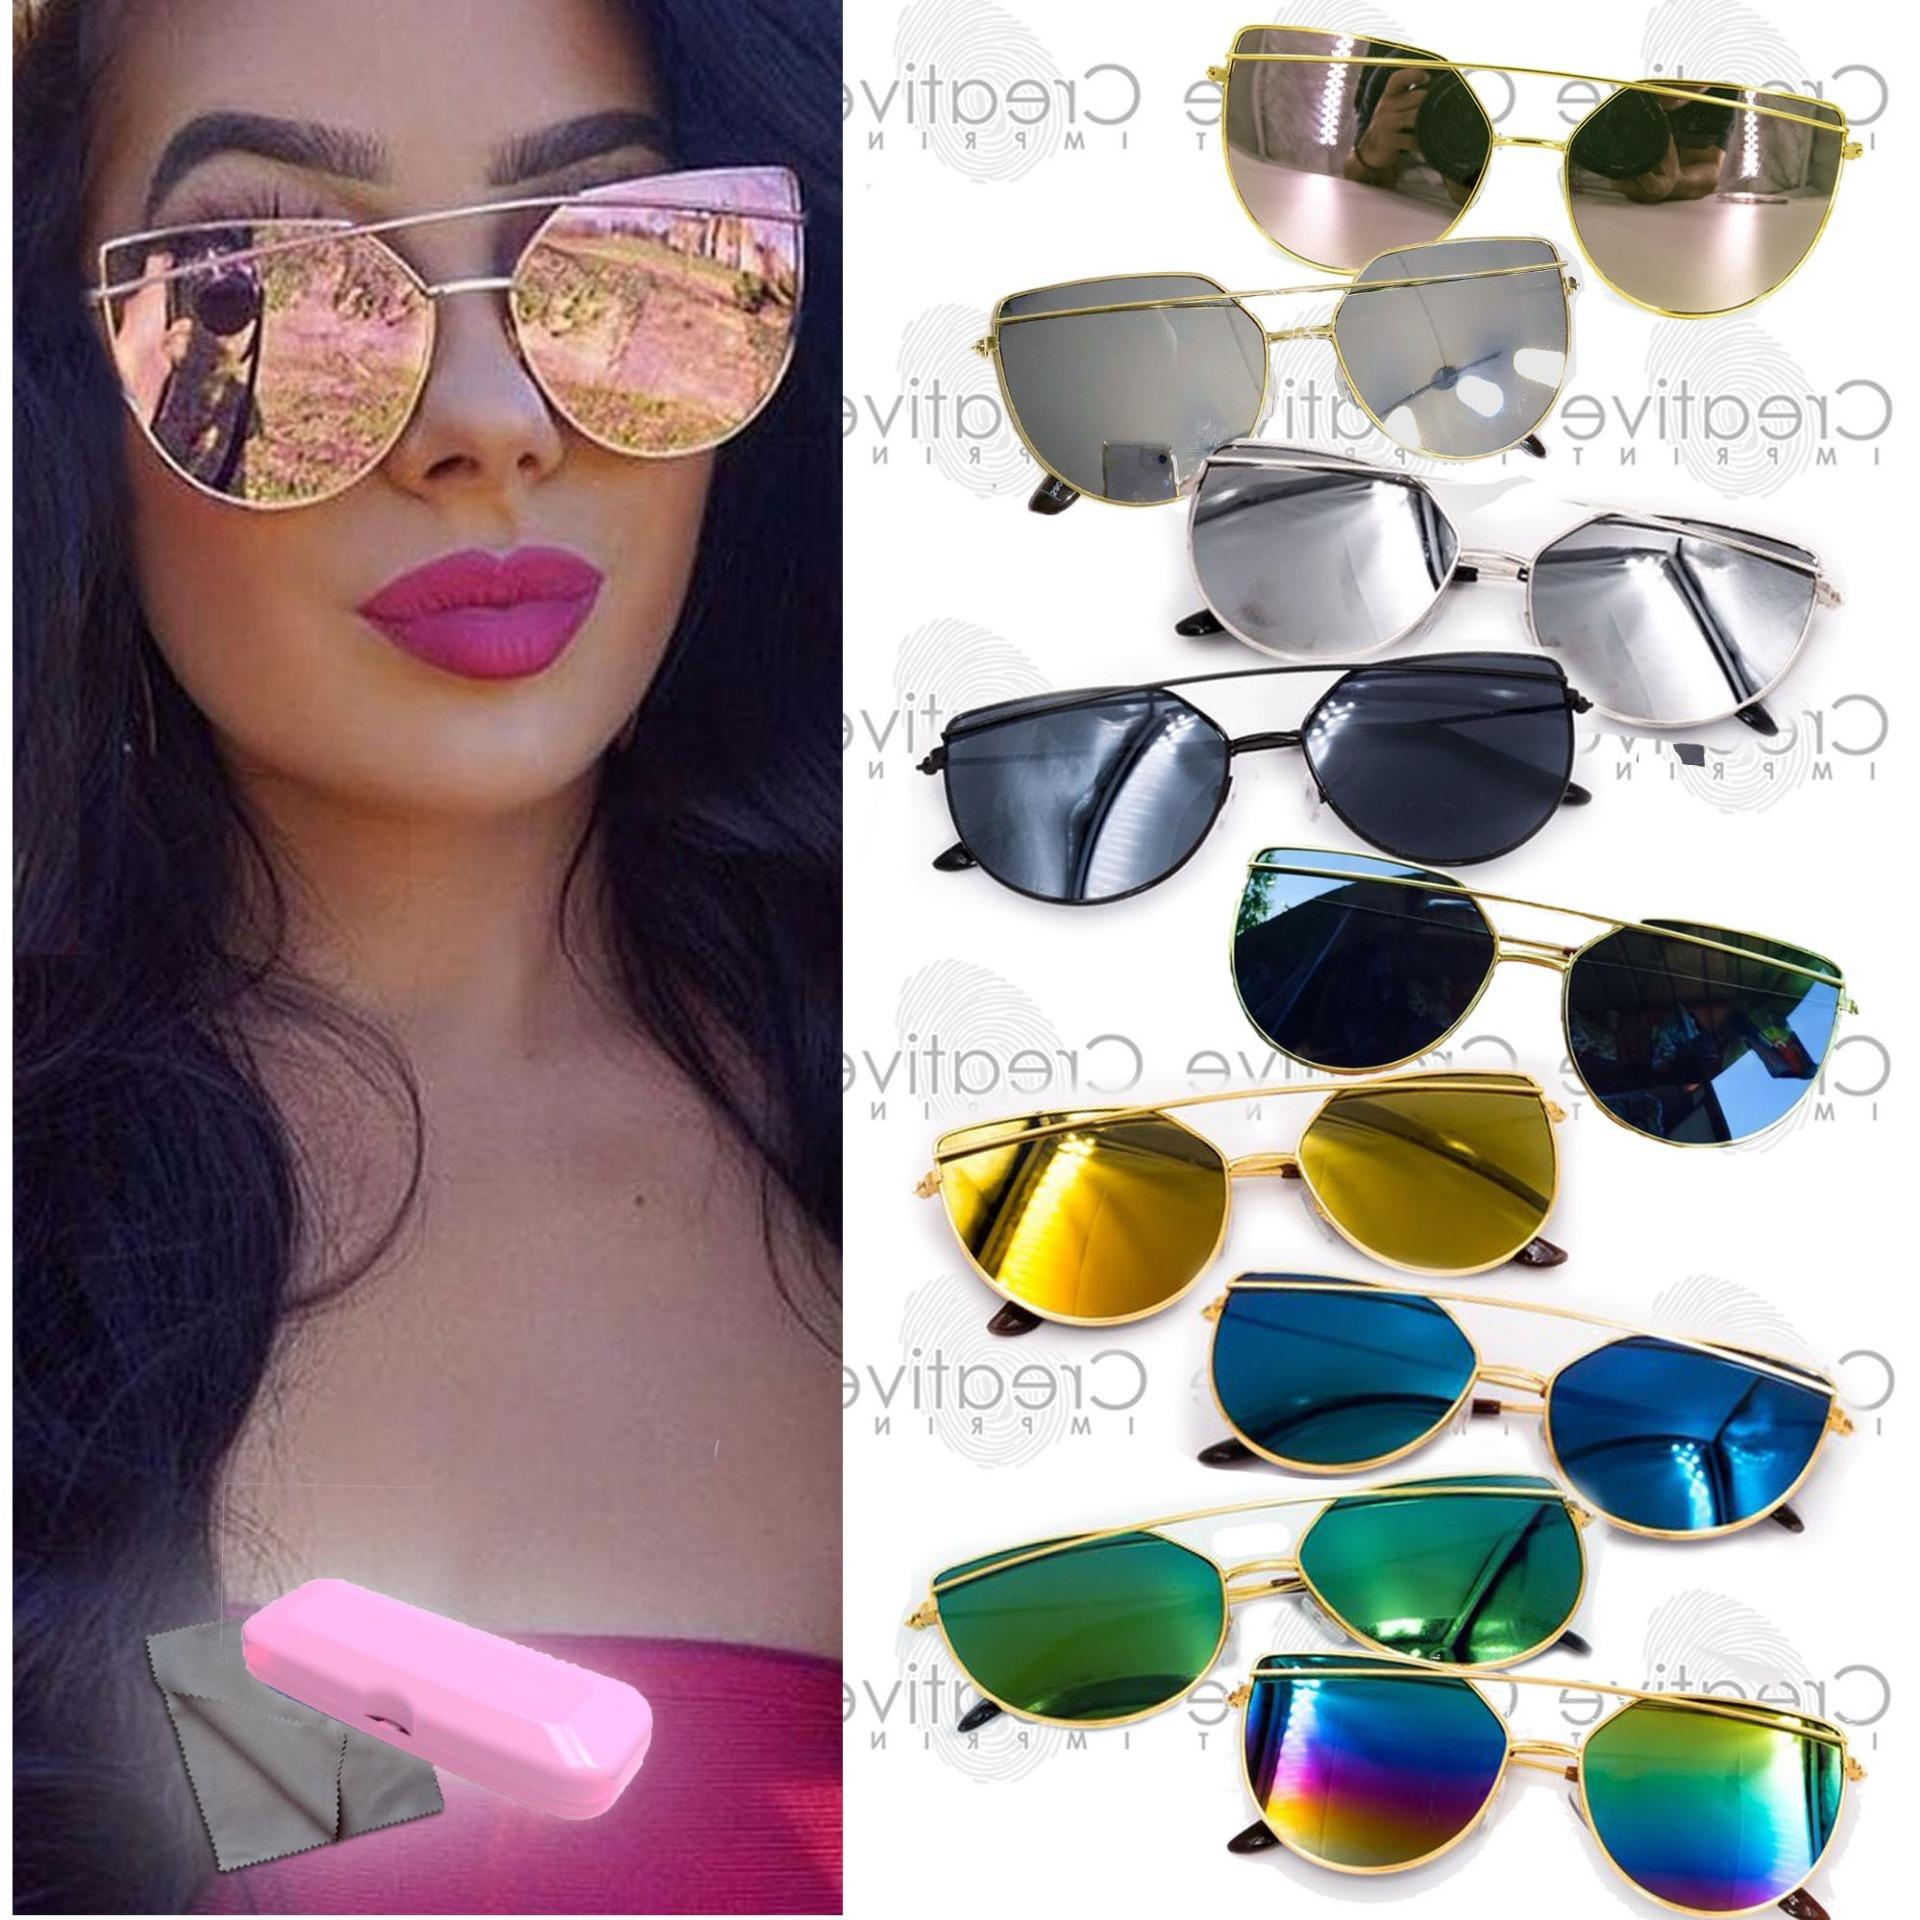 6bef5b9133a Double Bridge Cat Eye Flat Sunnies Sunglasses (FREE CASE WIPER) Shades  Light Metal Lens